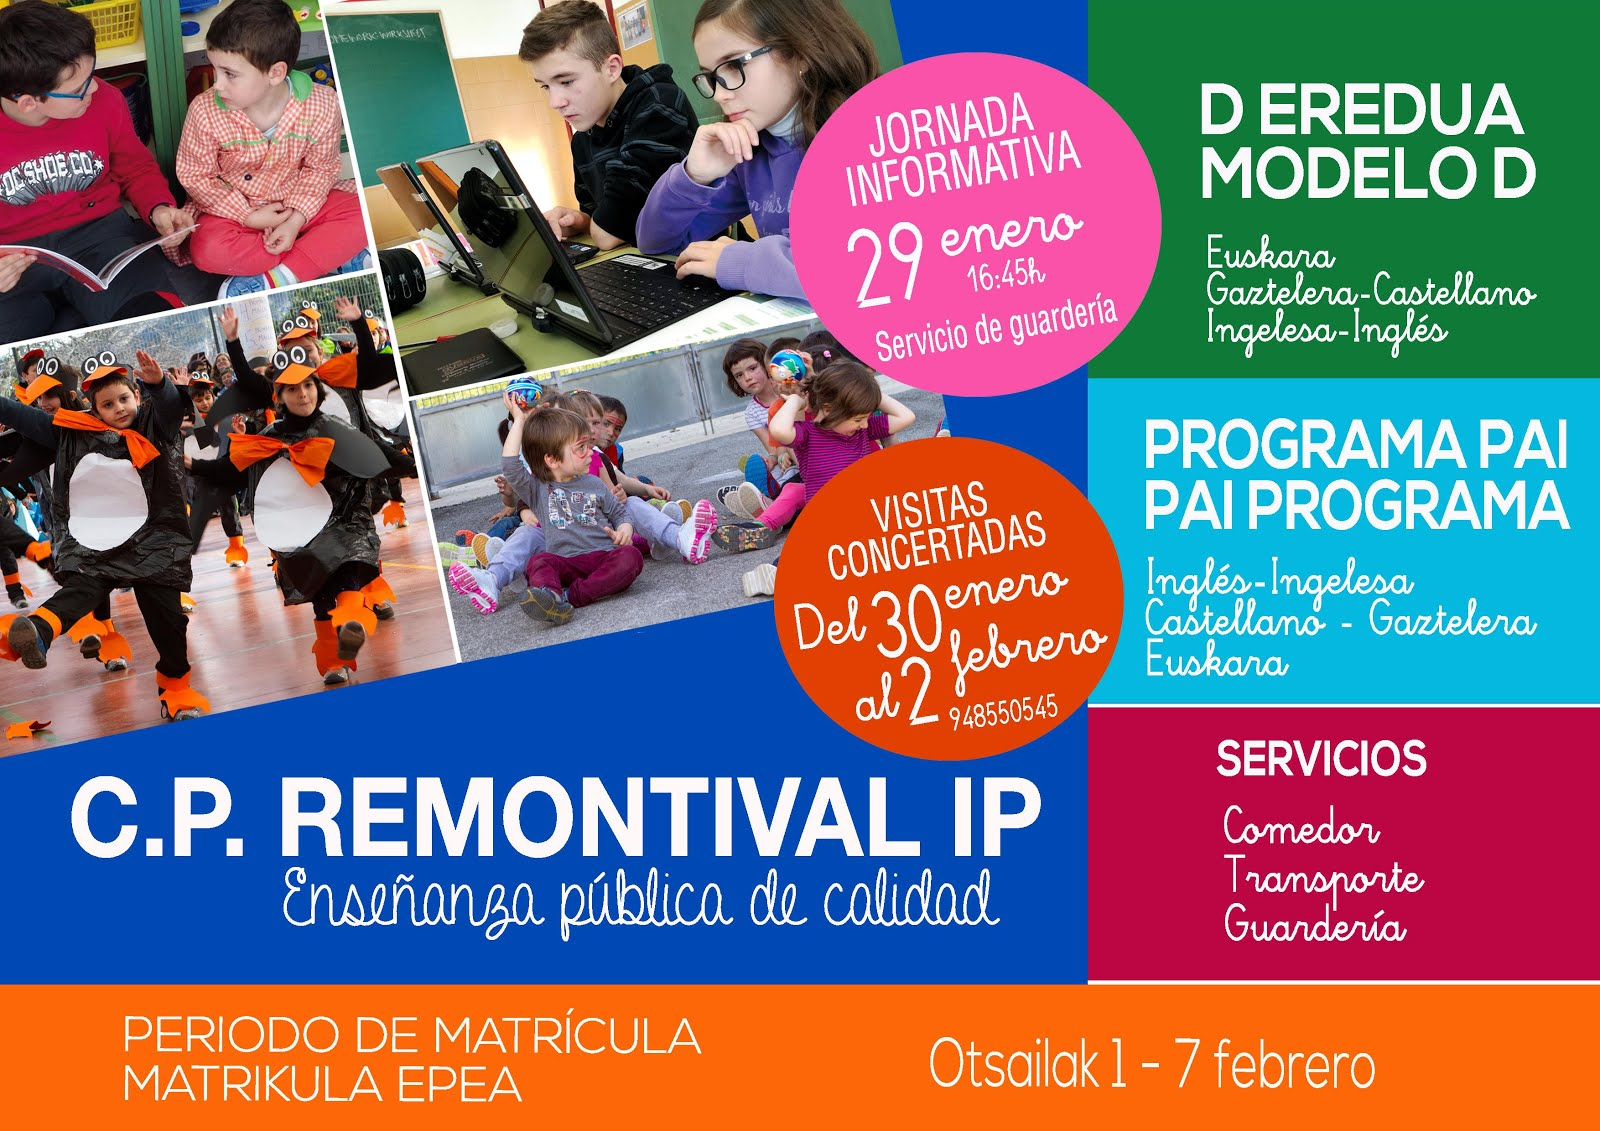 CP Remontival IP